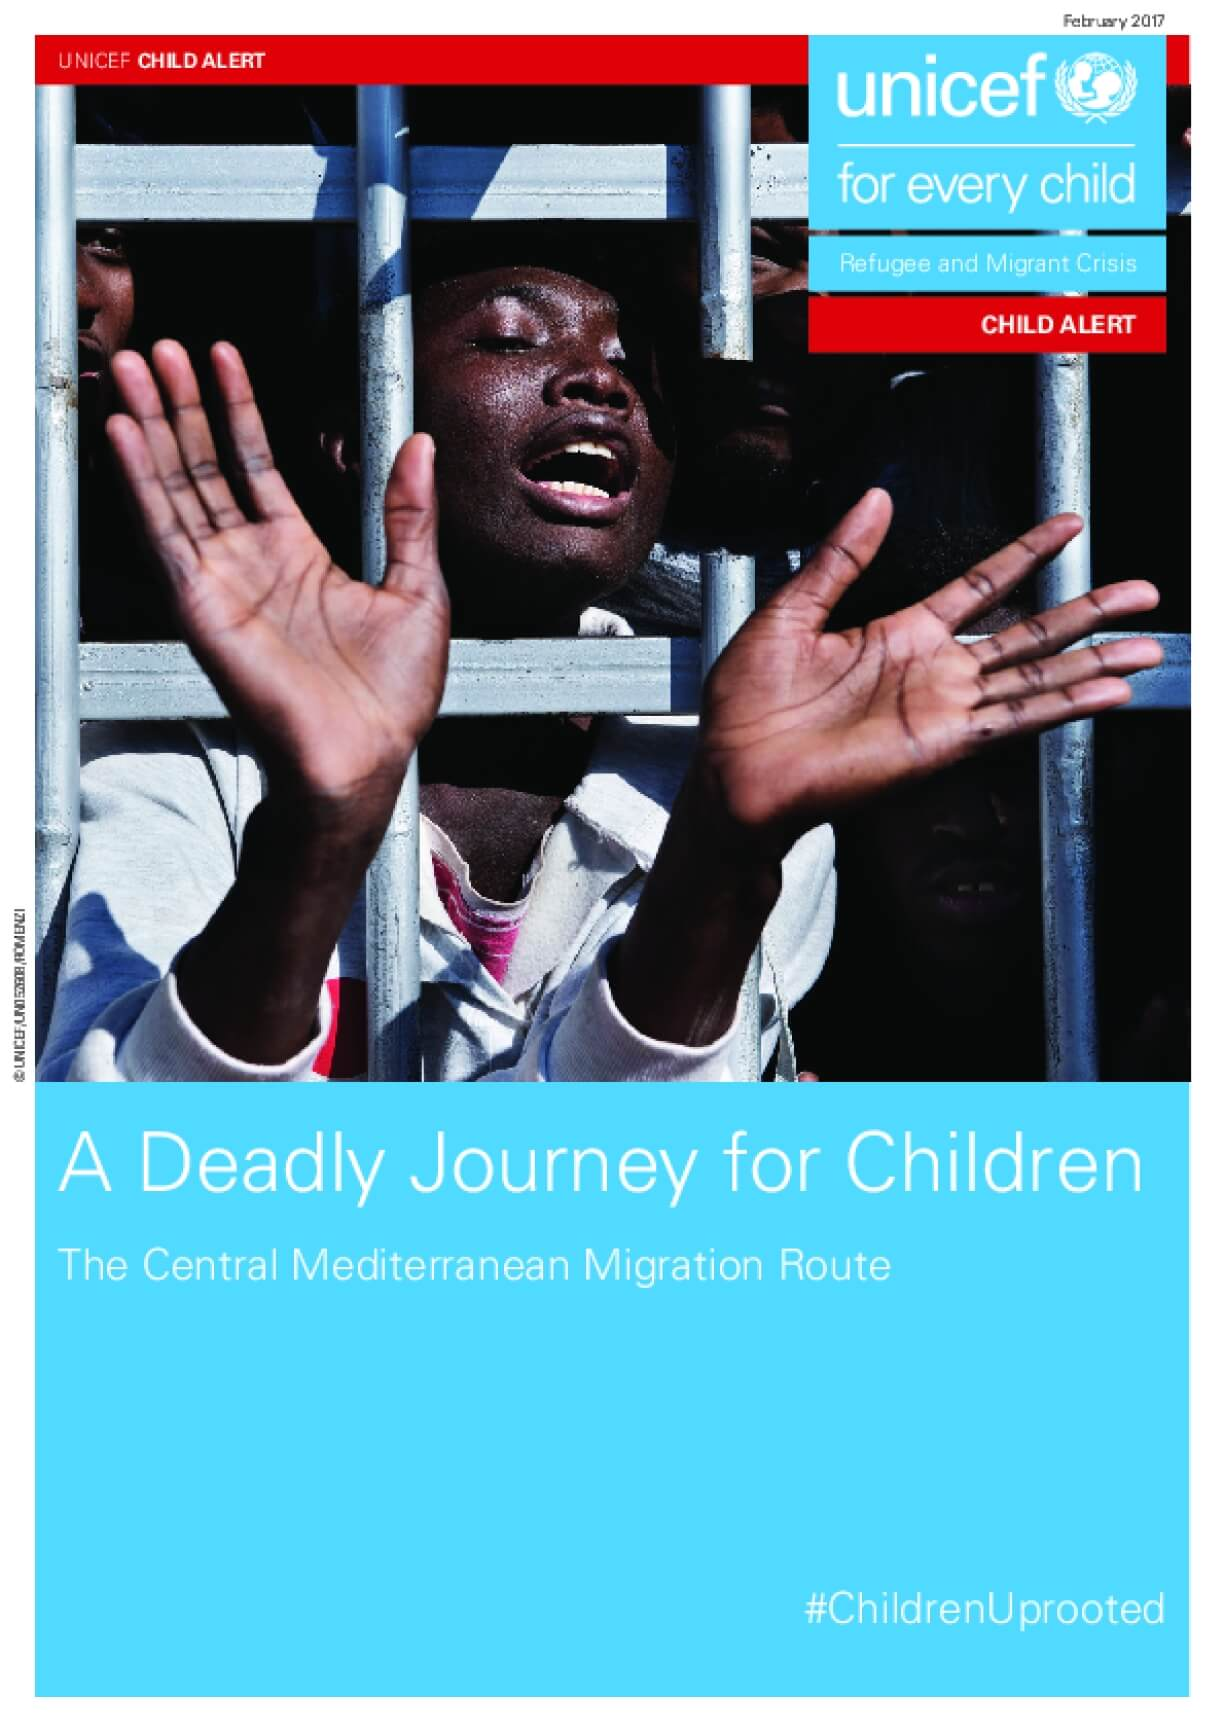 A Deadly Journey for Children: The Central Mediterranean Migration Route